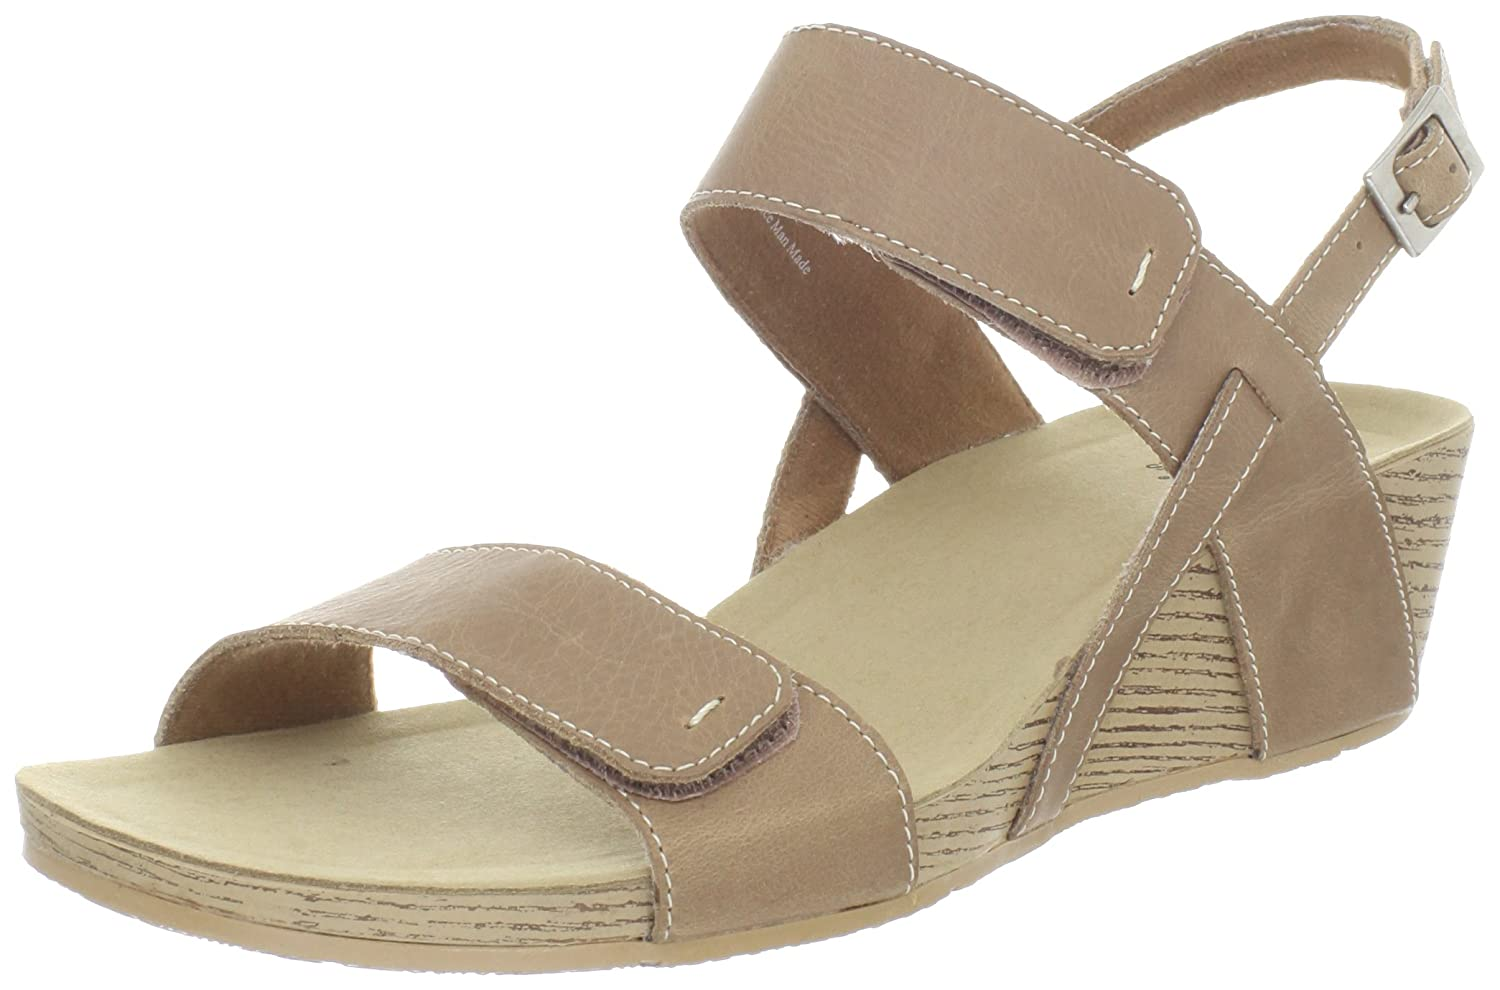 Clarks Women's Alto Disco Wedge Sandal, Beige, 11 M US: Amazon.co.uk: Shoes  & Bags